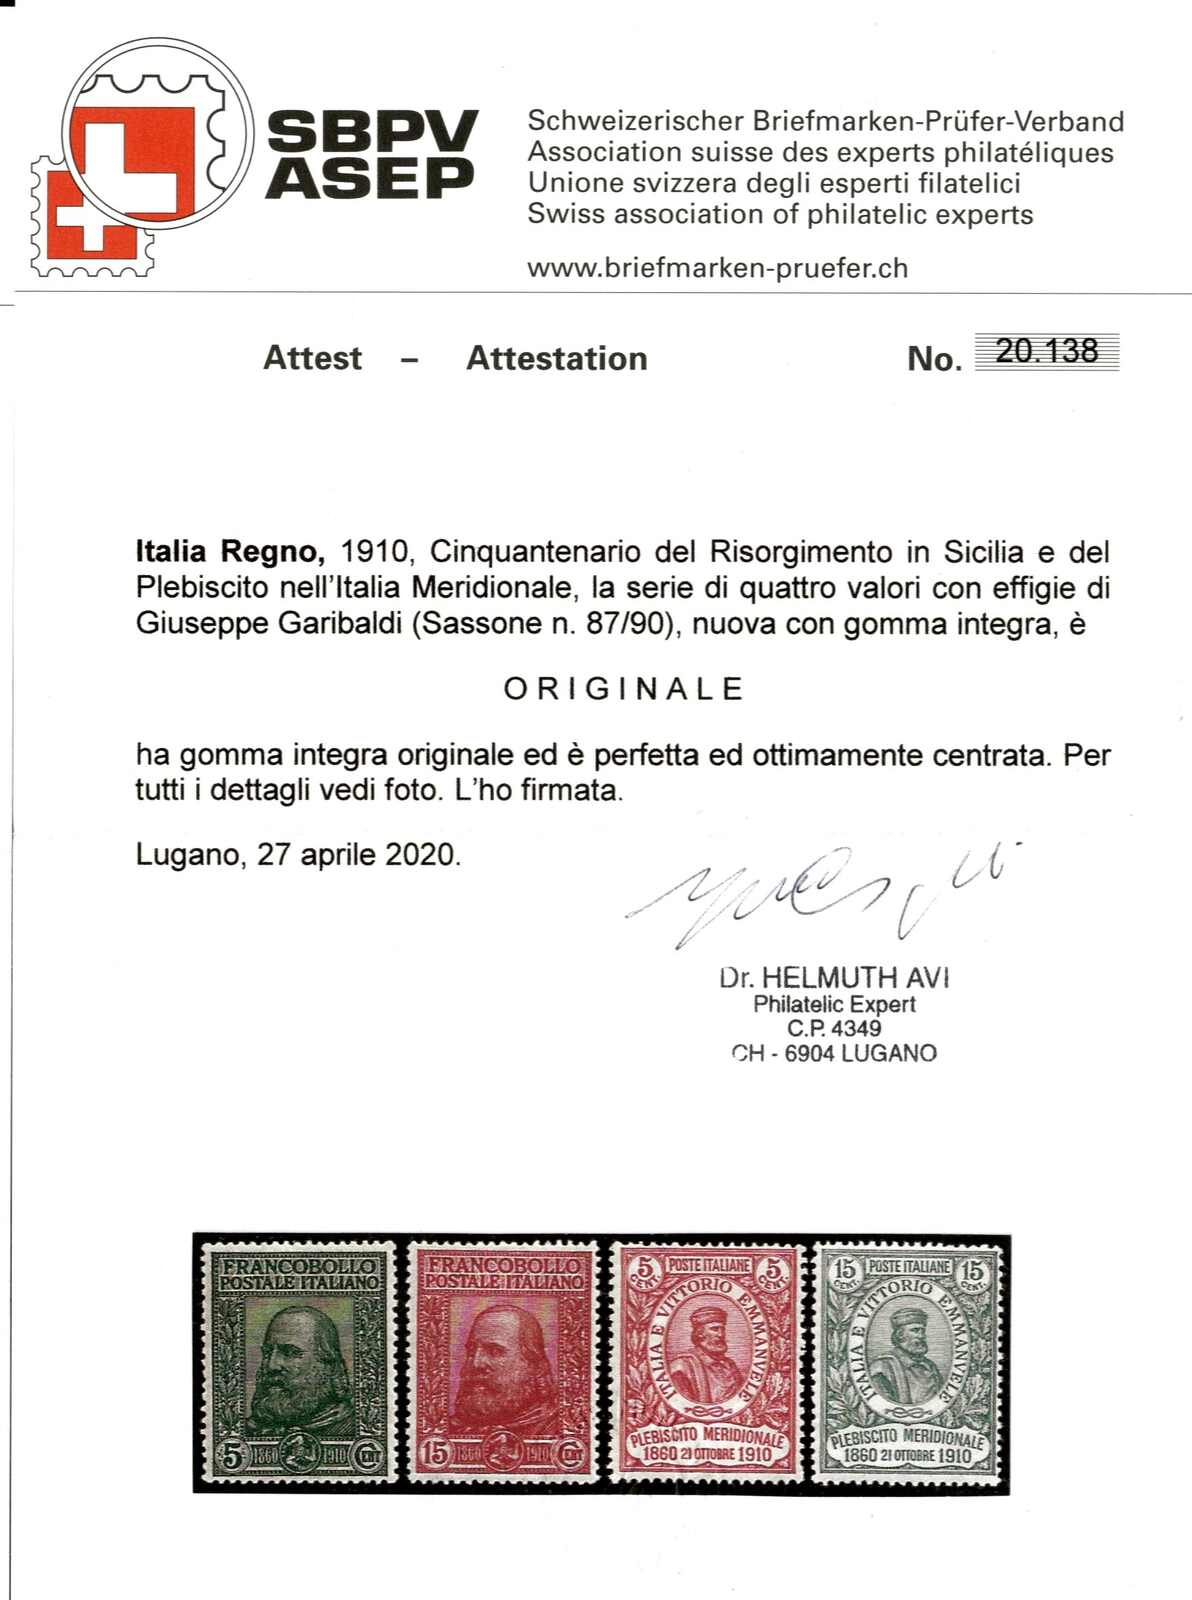 Lot 552 - europe Italian Kingdom -  Viennafil Auktionen Auction #66 Worldwide Mail Auction: Italy, Austria, Germany, Europe and Overseas